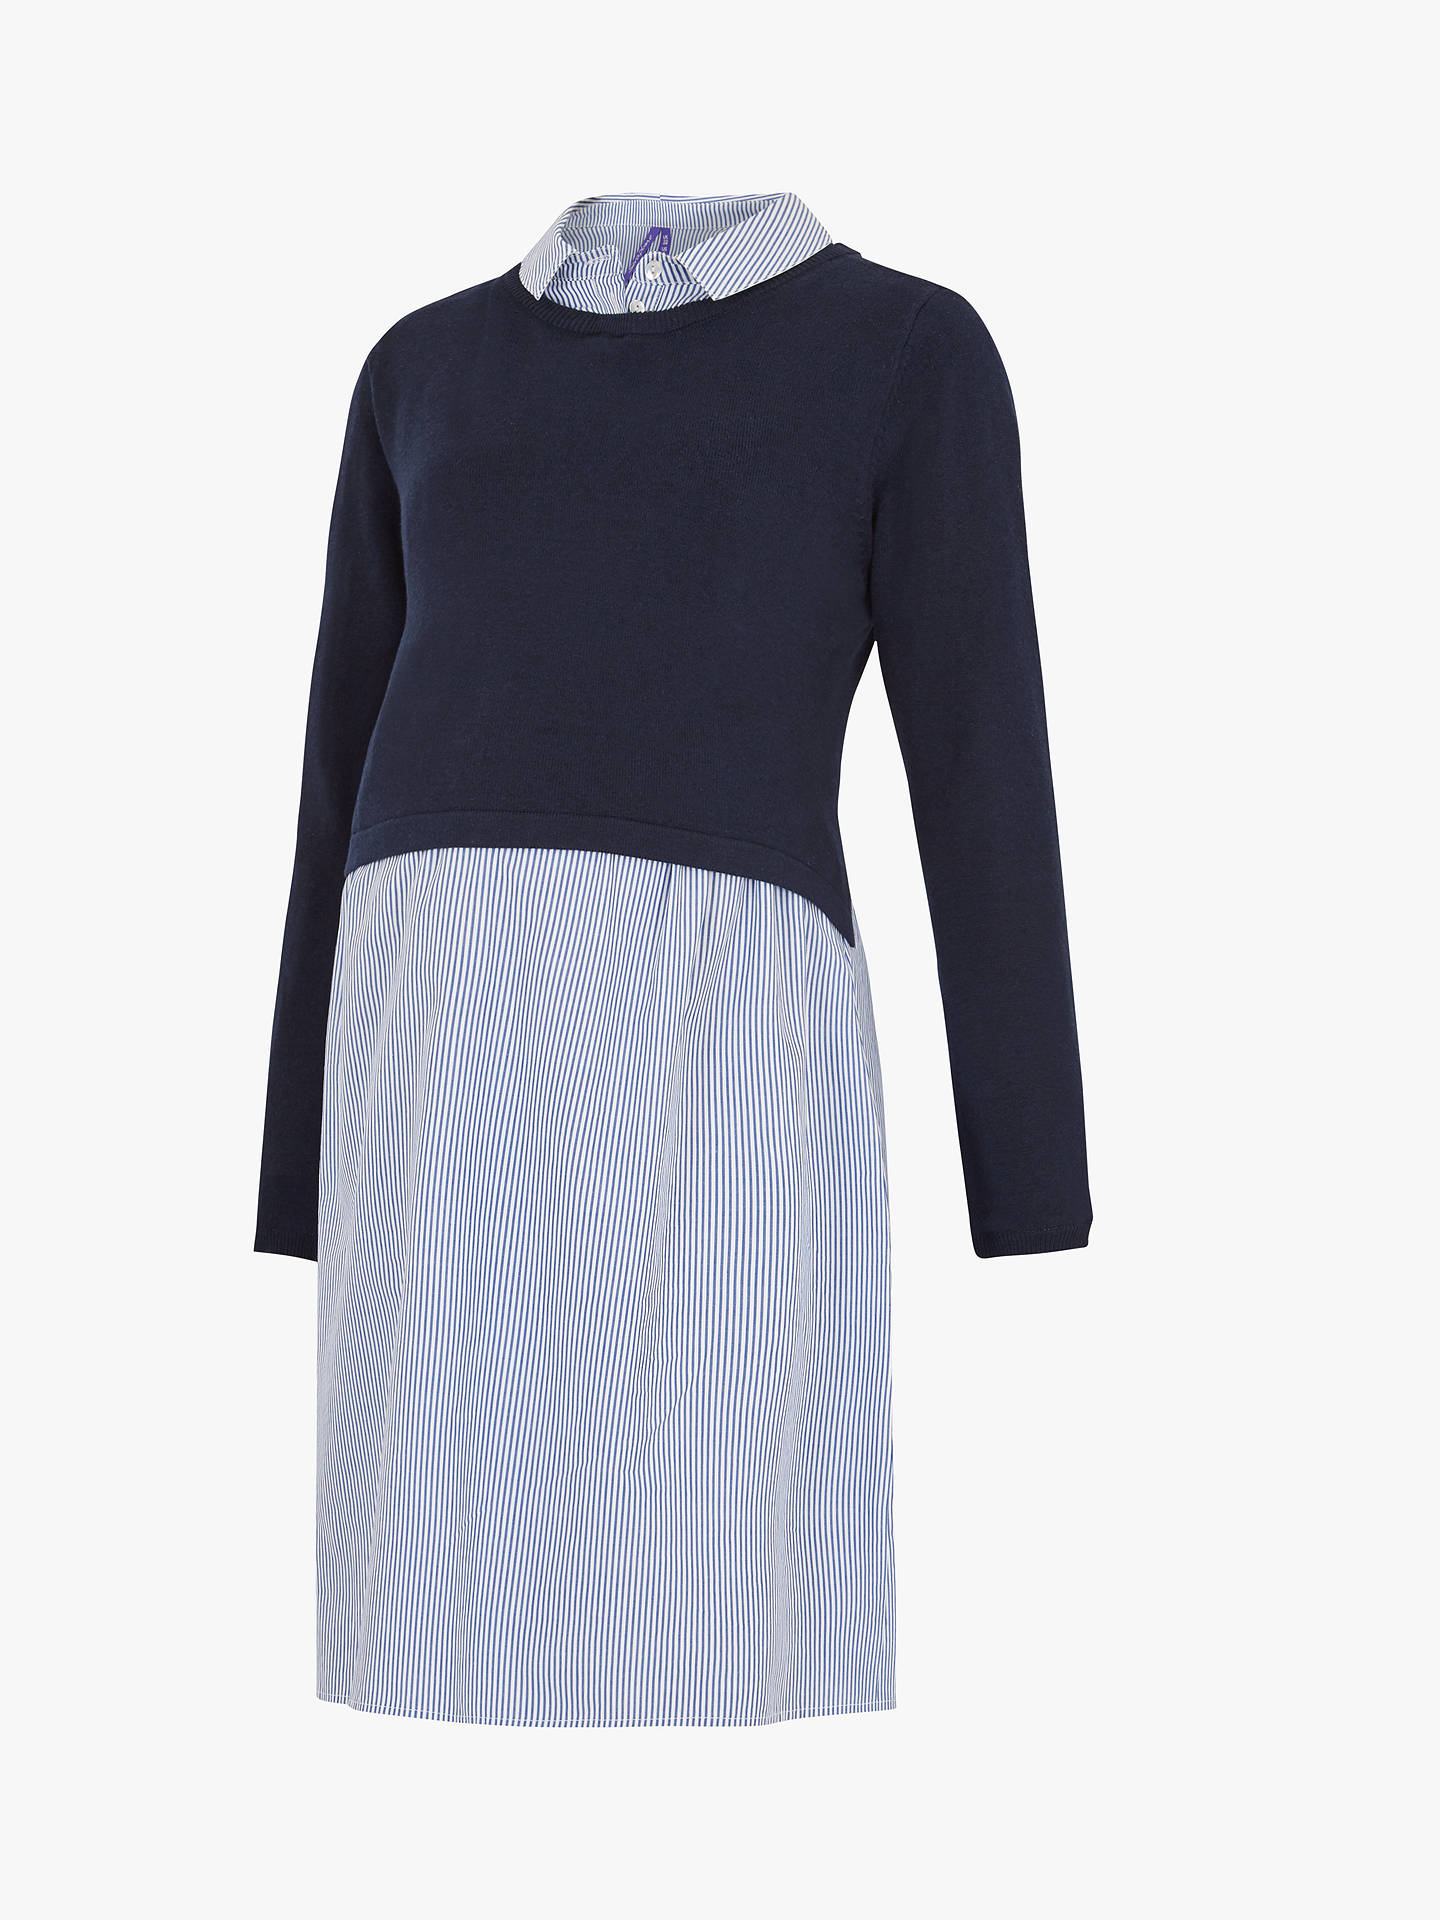 Buy Séraphine Darla Two Piece Maternity Nursing Dress, Navy/Multi, 8 Online at johnlewis.com